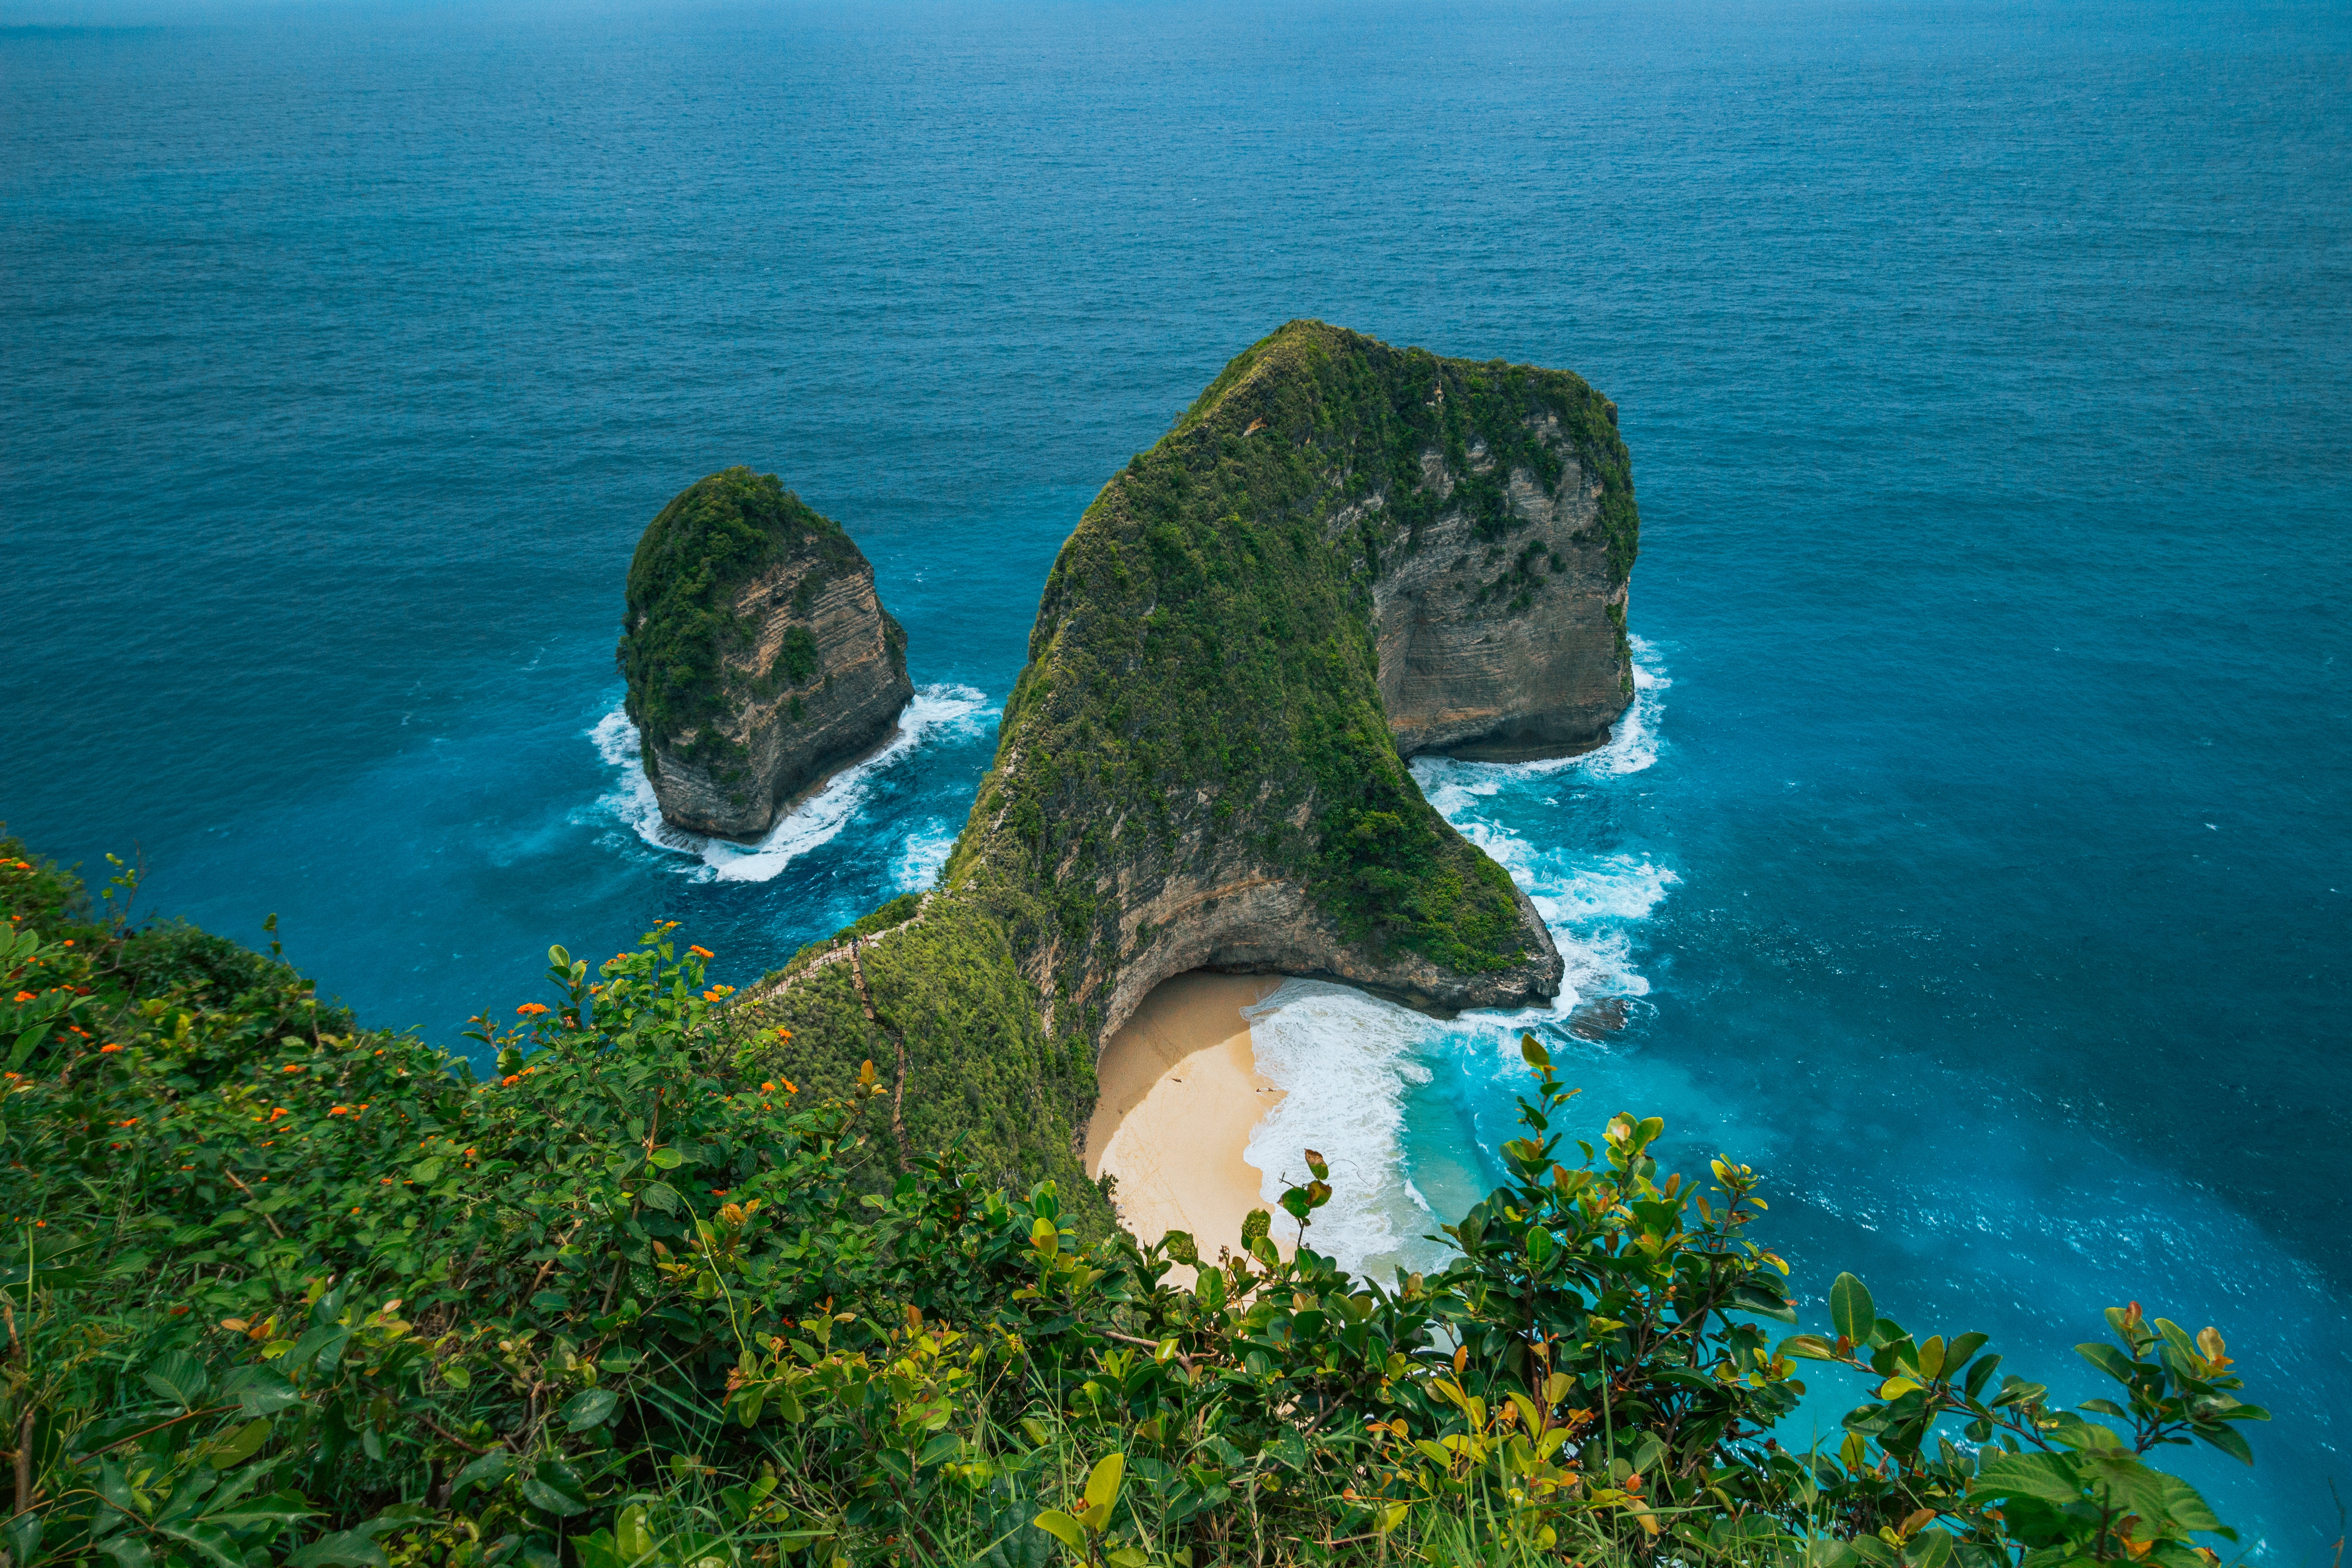 109855 download wallpaper Nature, Sea, Rock, Break, Precipice, Vegetation, Cliff screensavers and pictures for free